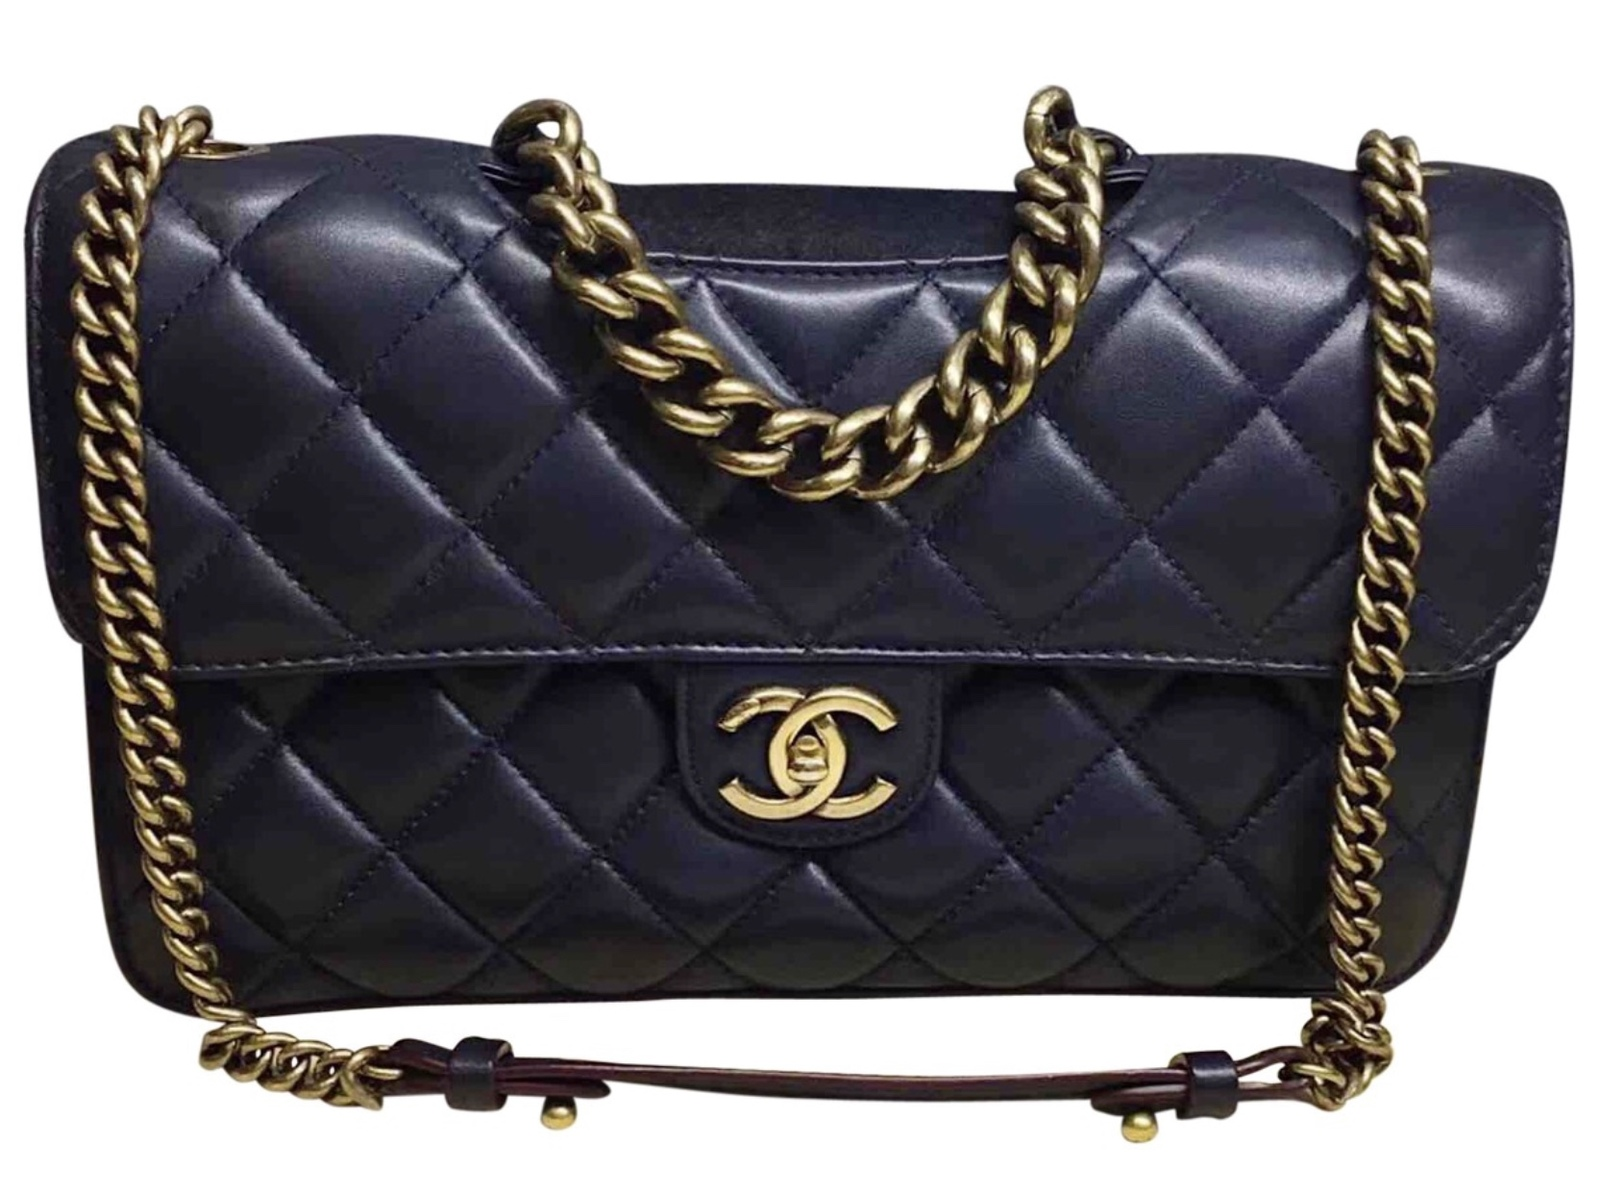 Authentic Chanel Rare Navy Blue Quilted and 41 similar items. D9e52524 aecc  4544 8fe7 212bc0bbd00c 45a8949ddf91b